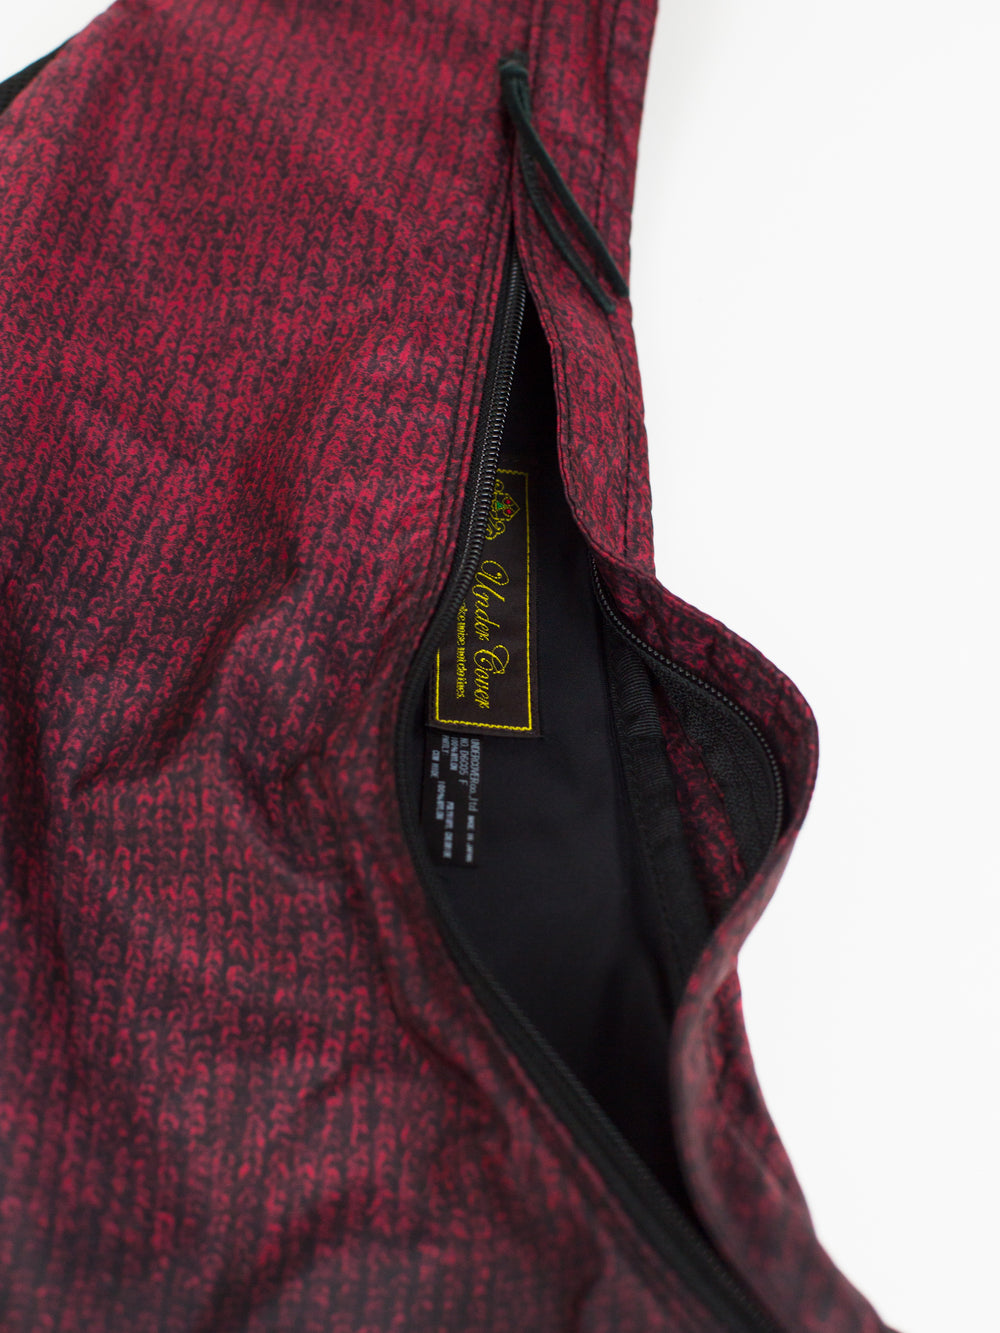 Undercover AW09 Earmuff Maniac Gradient Sling Bag